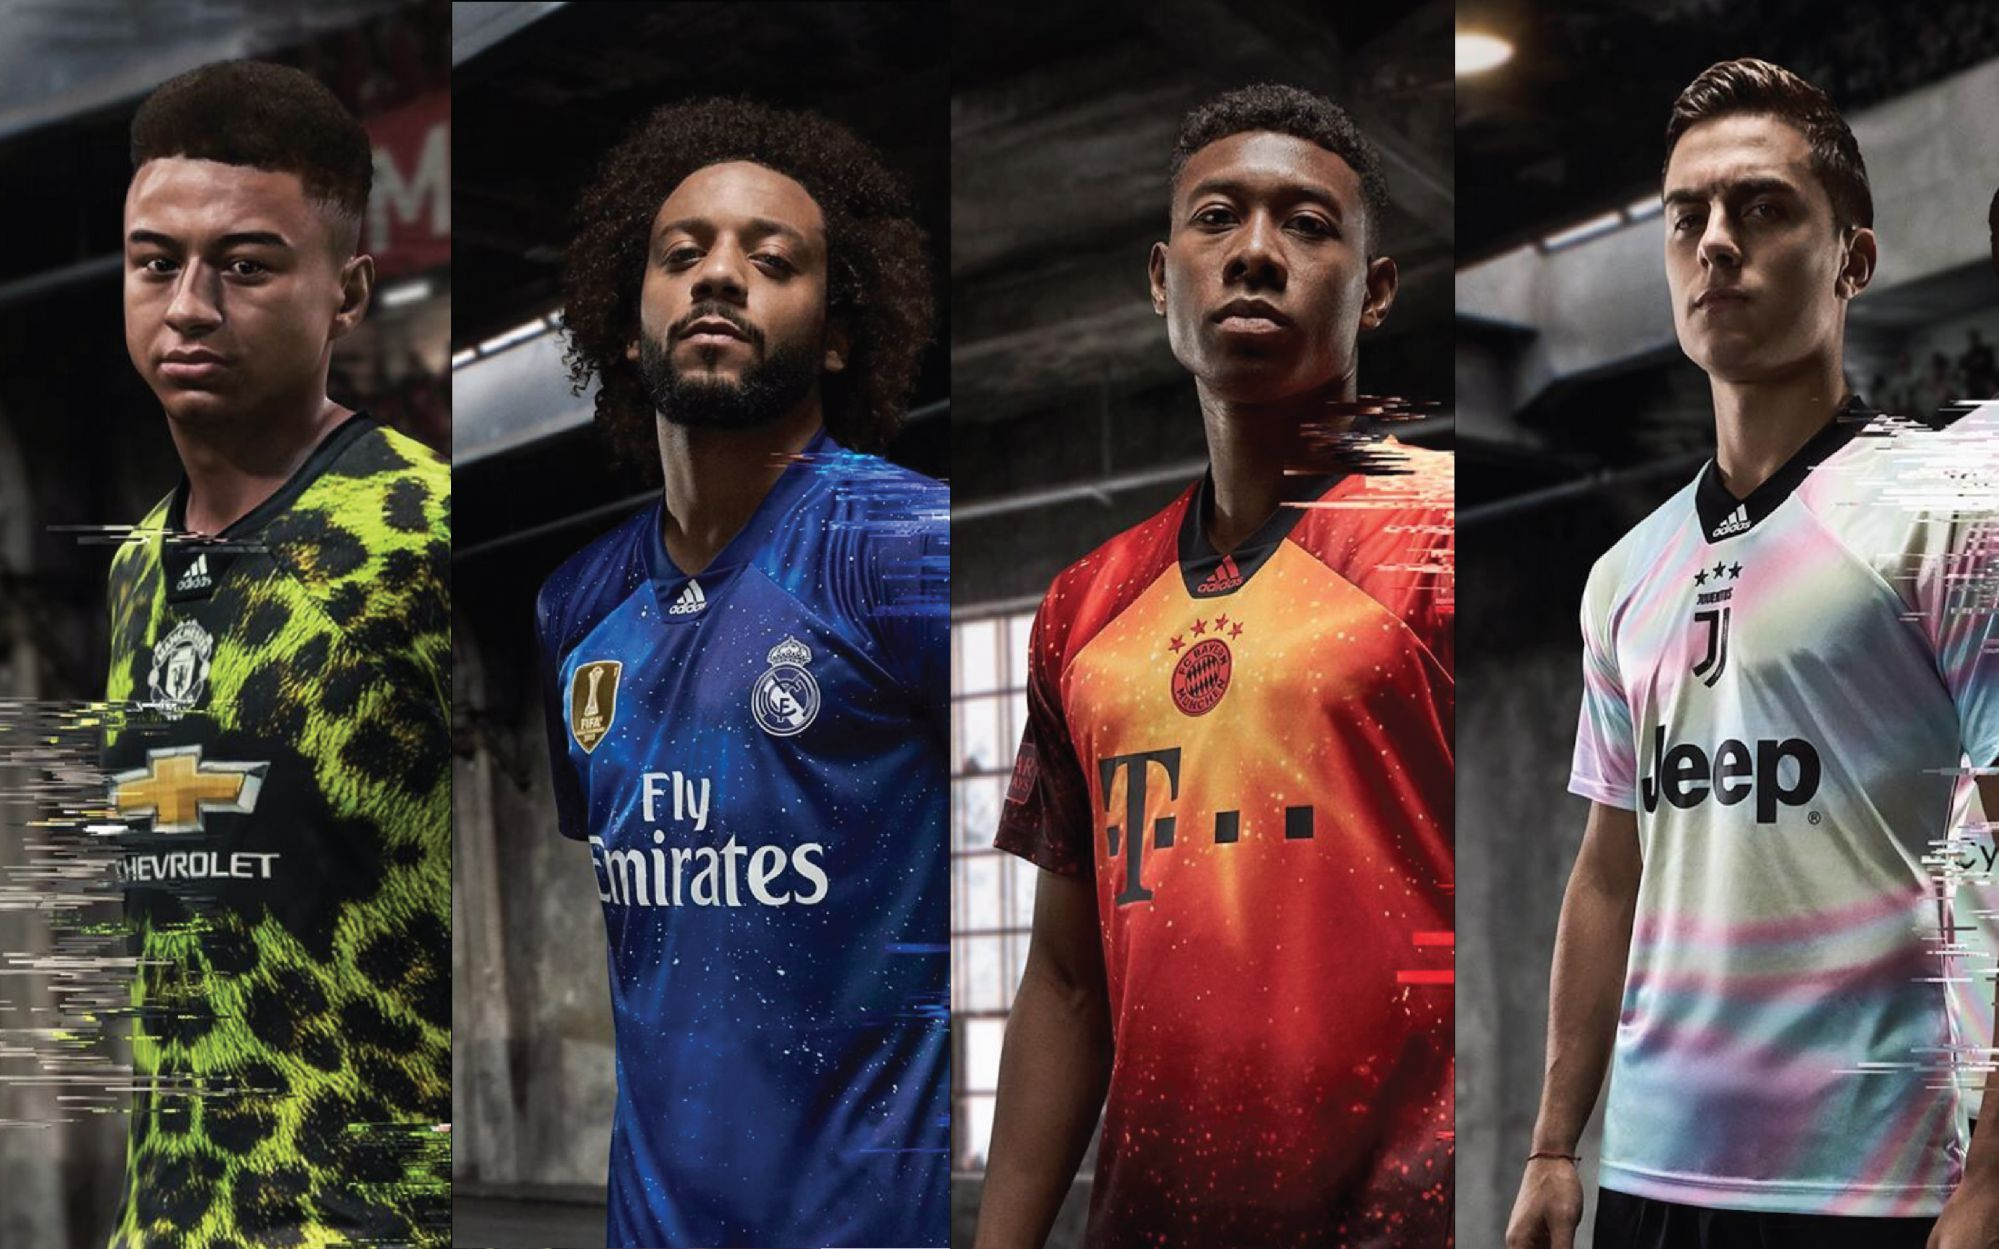 adidas presented 4 special jerseys in collaboration with EA Sports